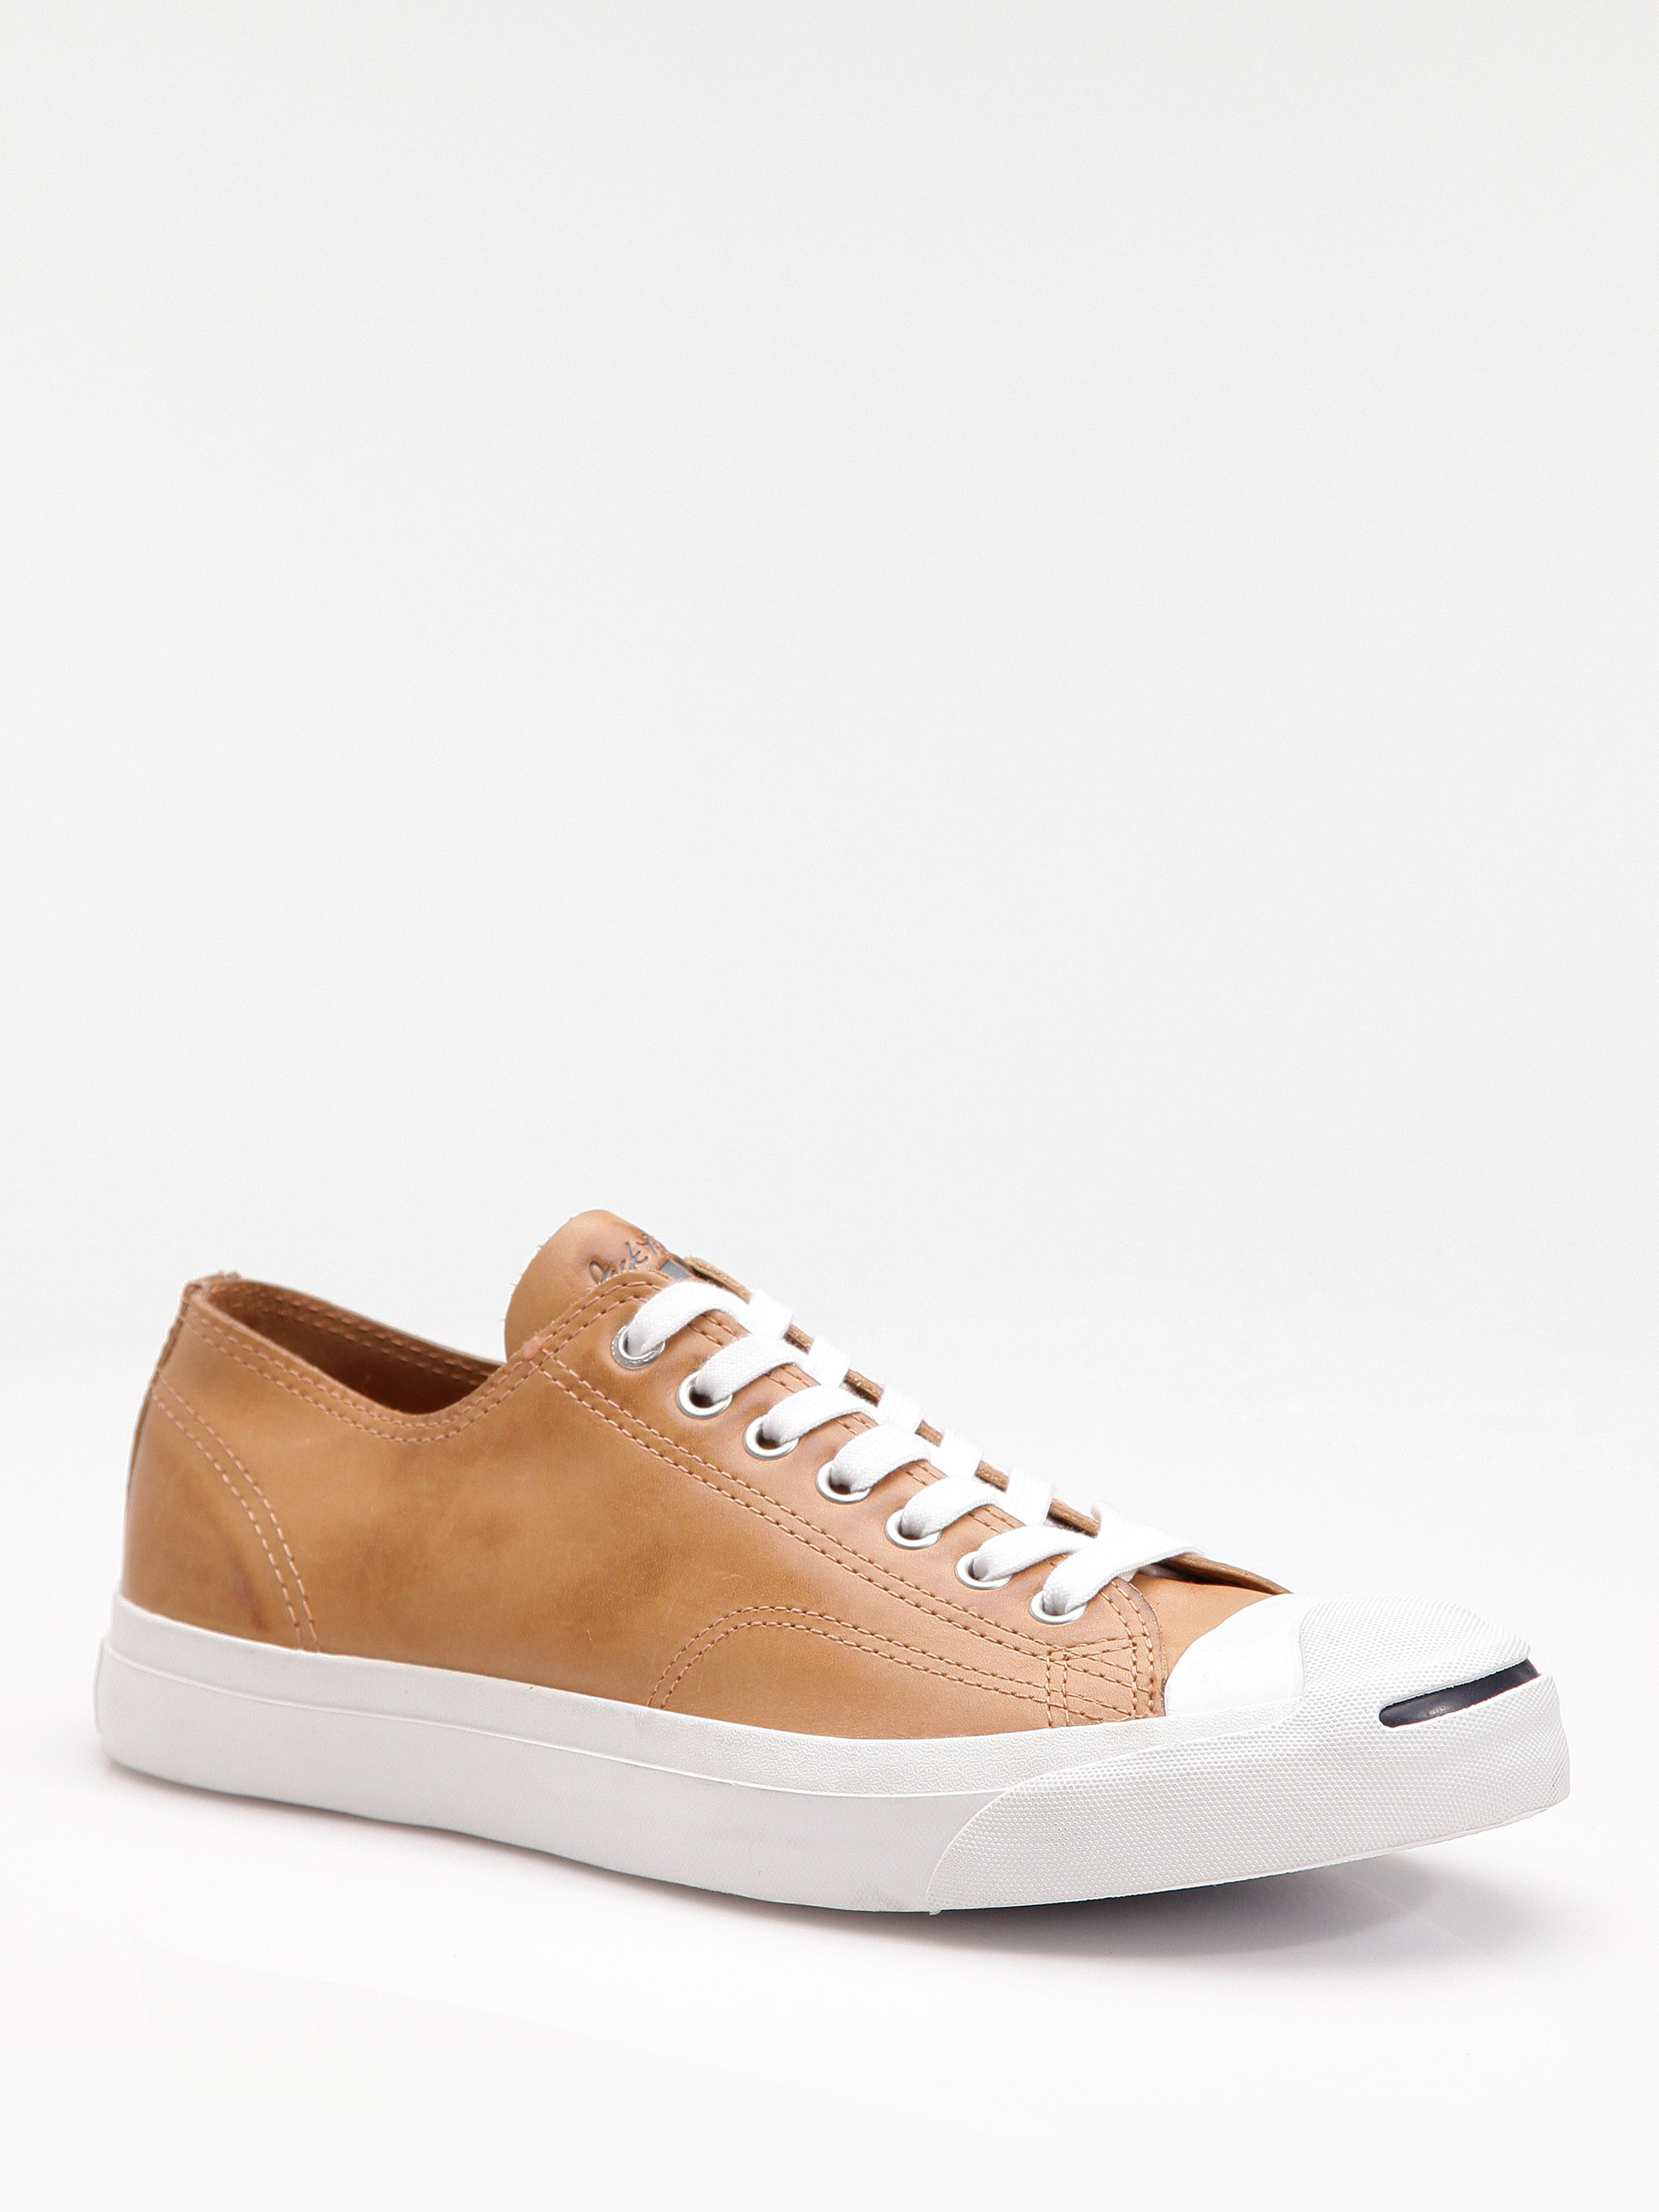 27c5e6fd18e7 Lyst - Converse Jack Purcell Leather Oxfords in Brown for Men